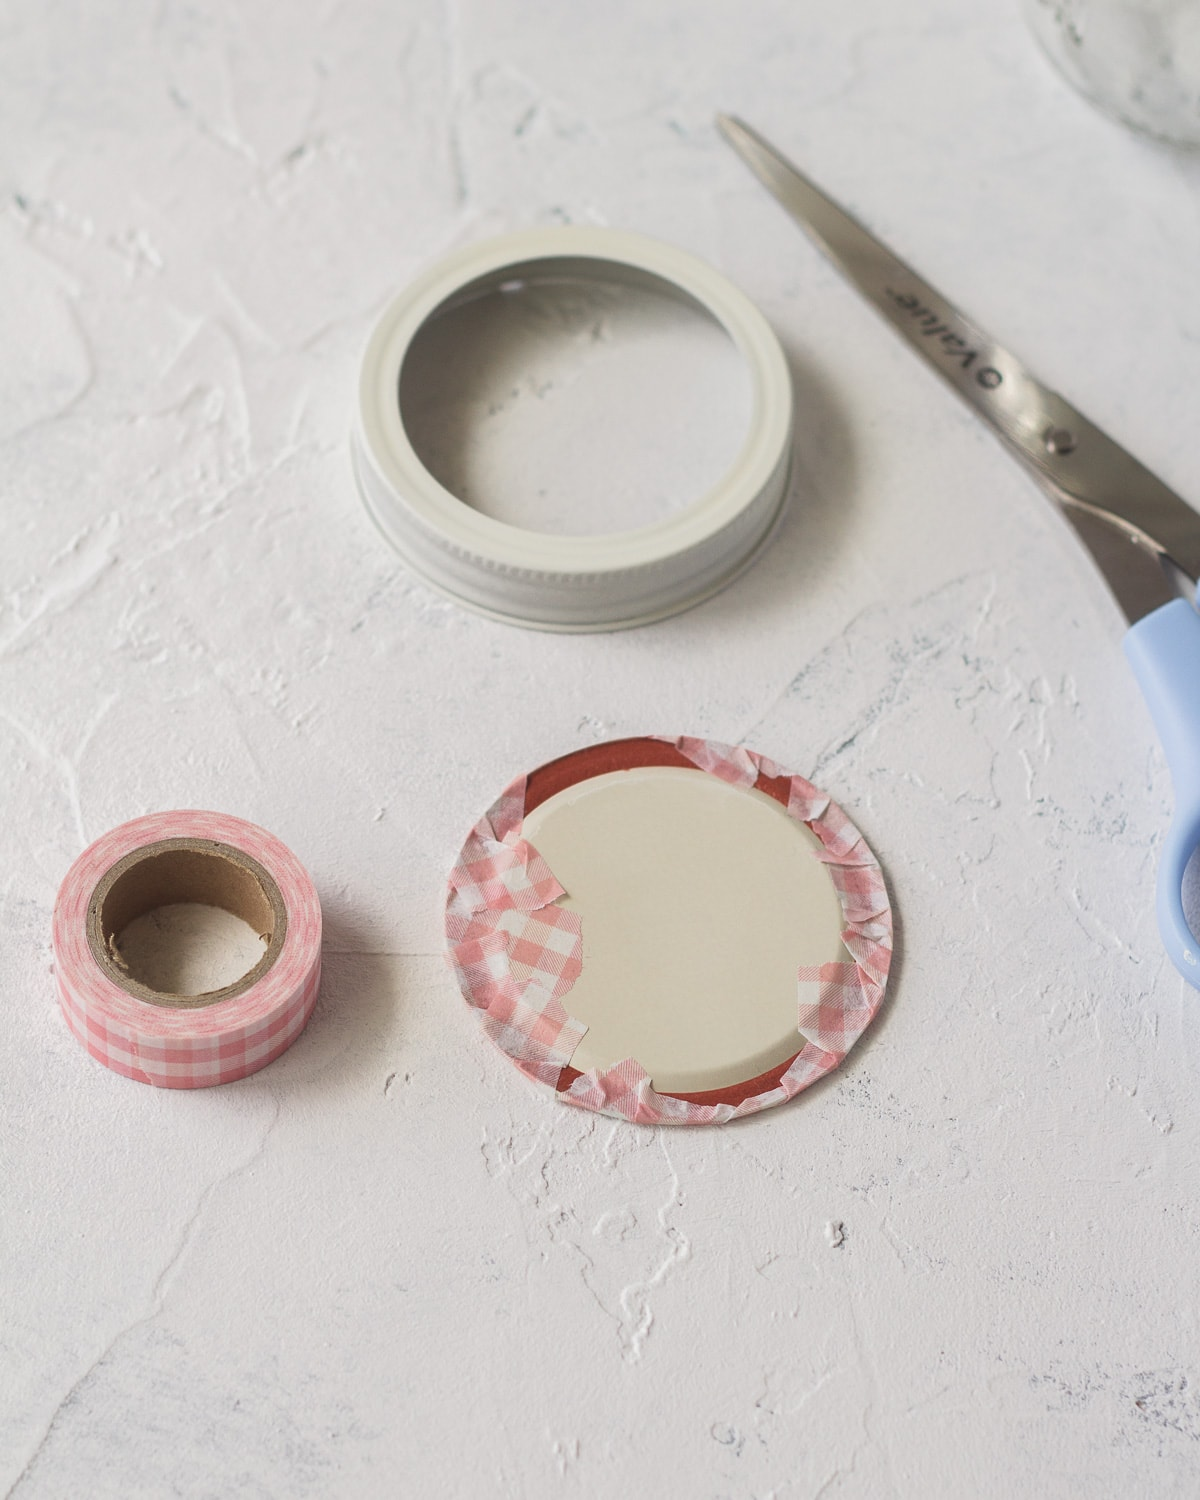 Wrapping a mason jar lid with tape.